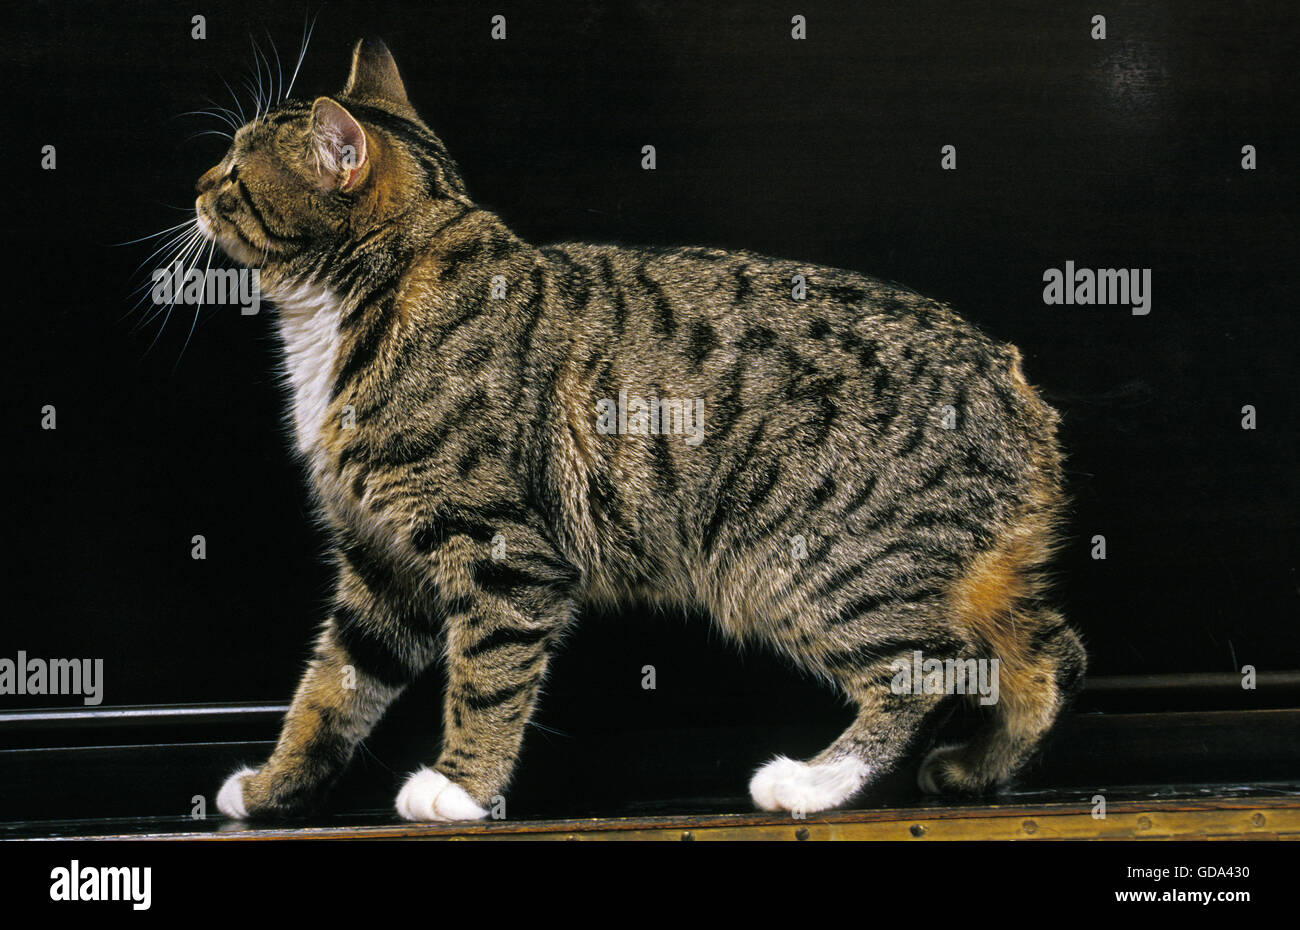 Manx Domestic Cat, Tailless Breed - Stock Image